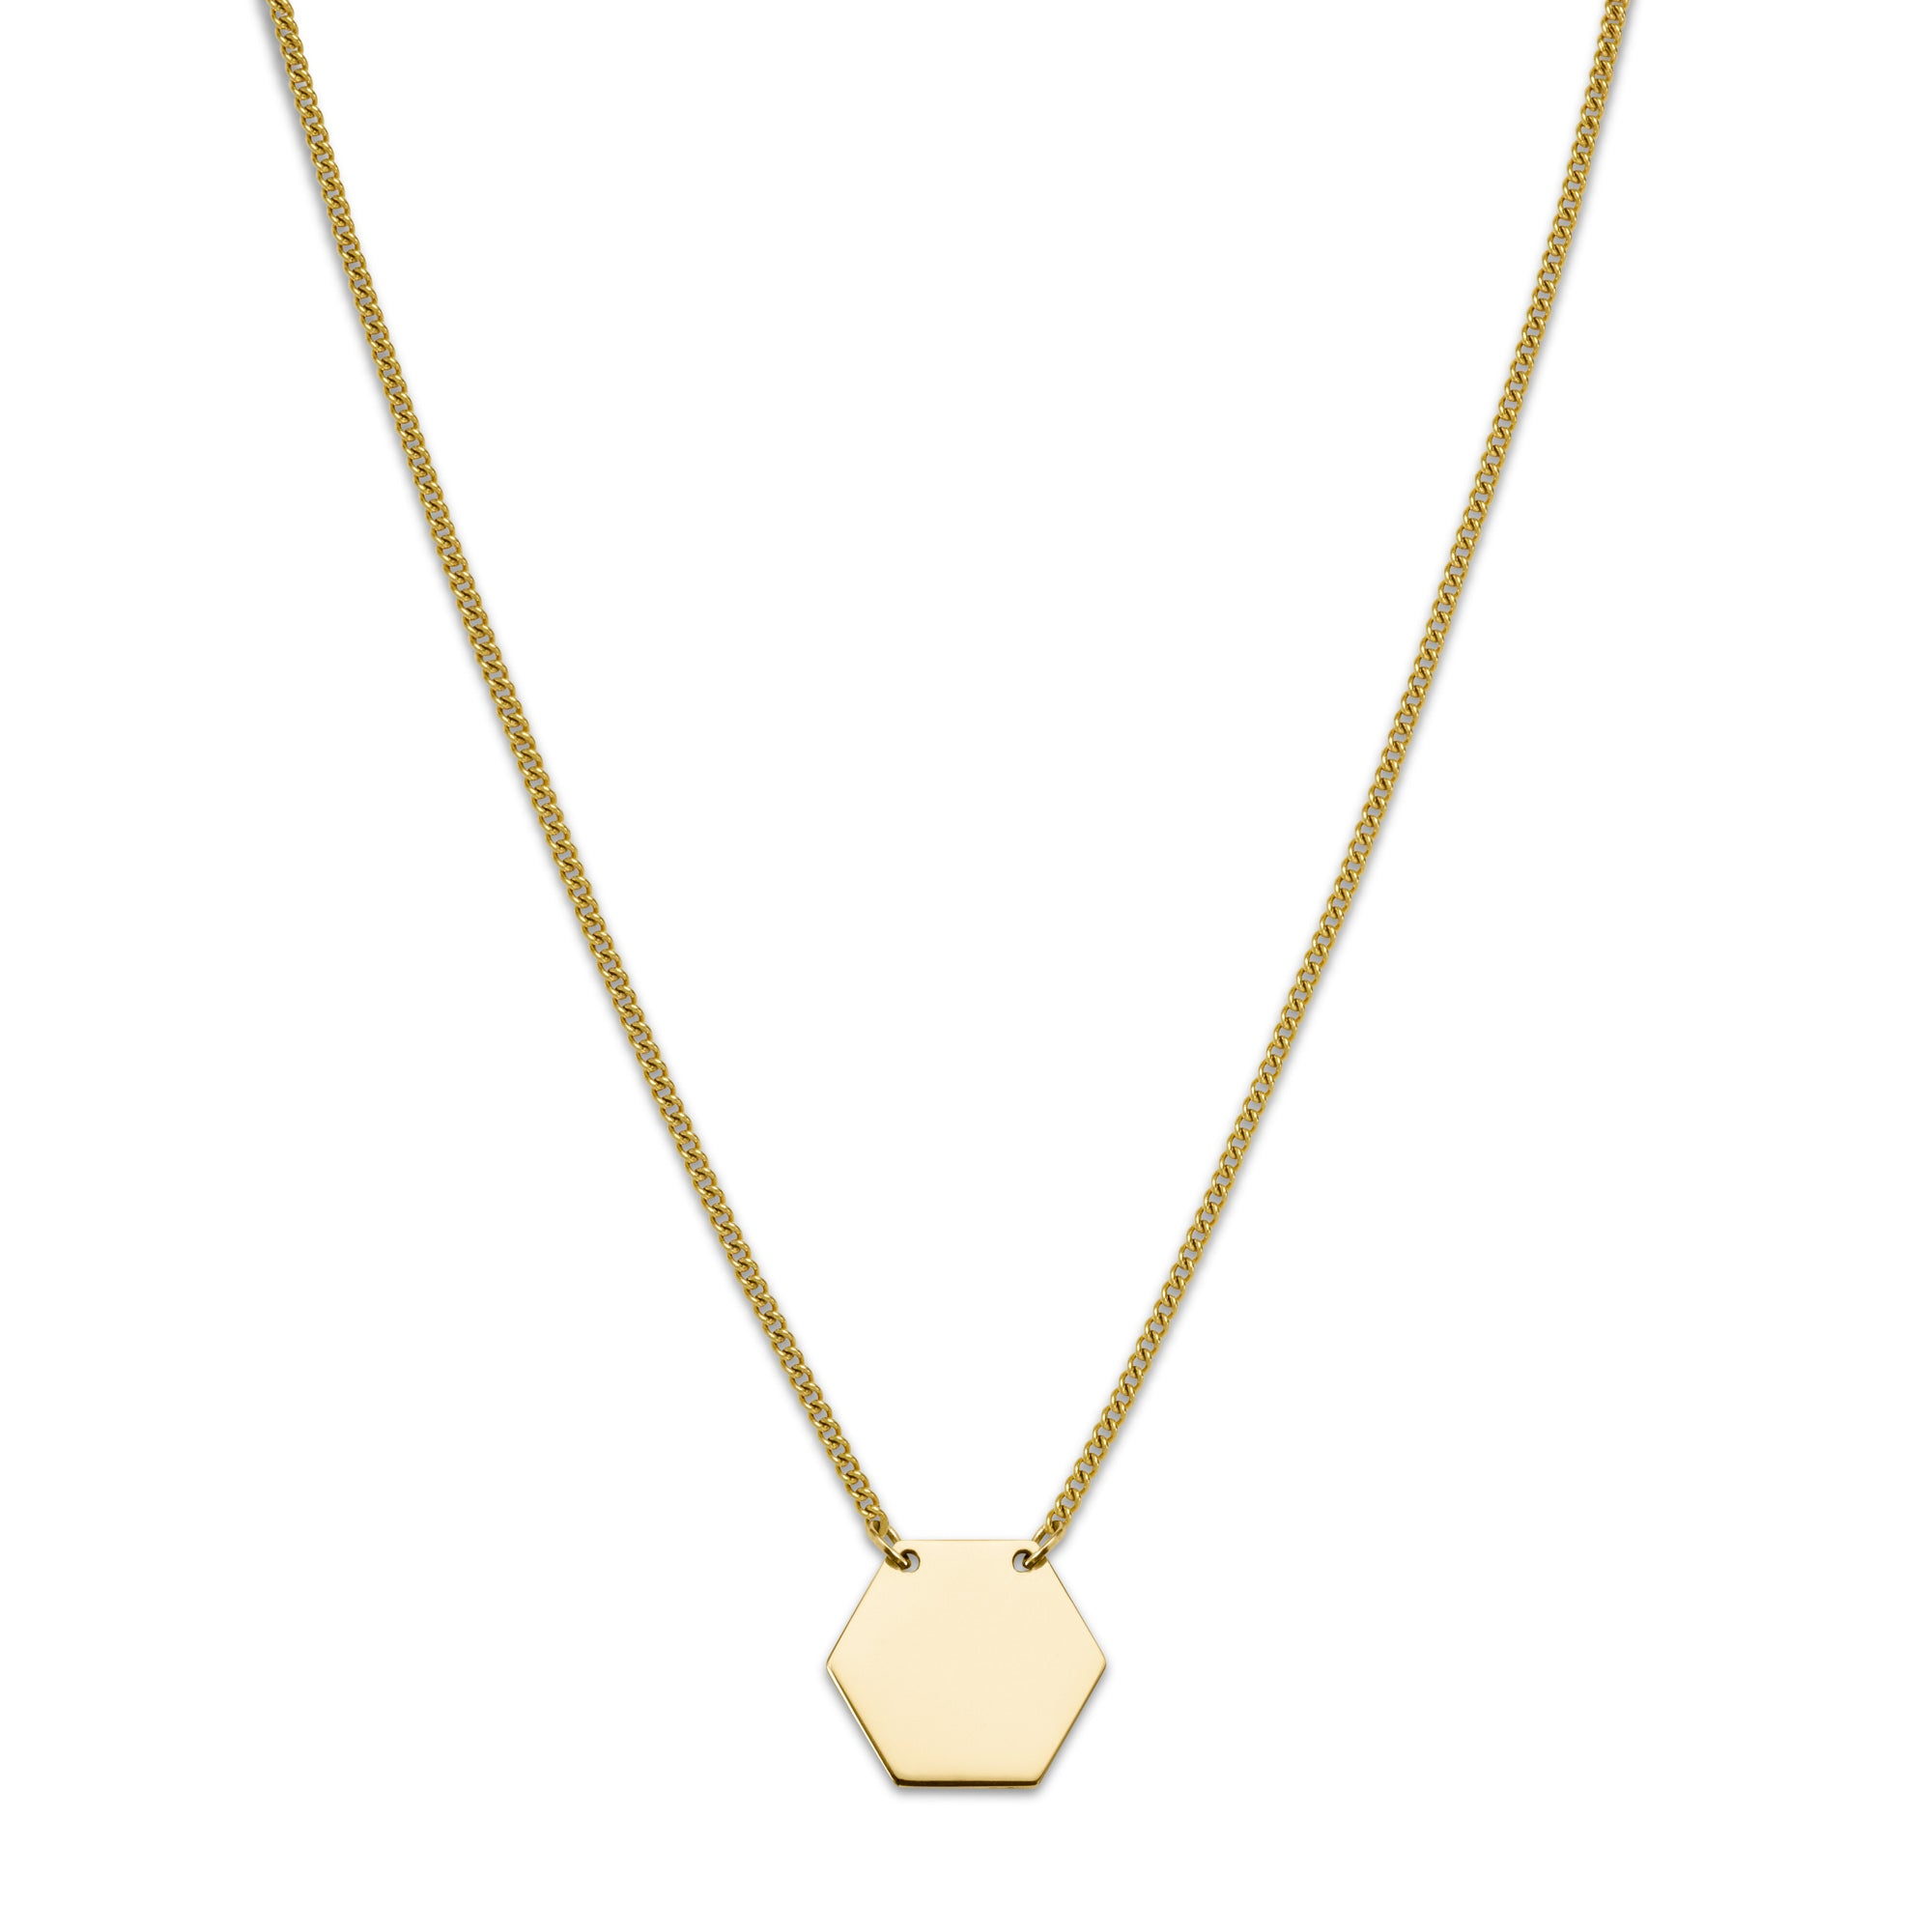 LIBRI NECKLACE Gold